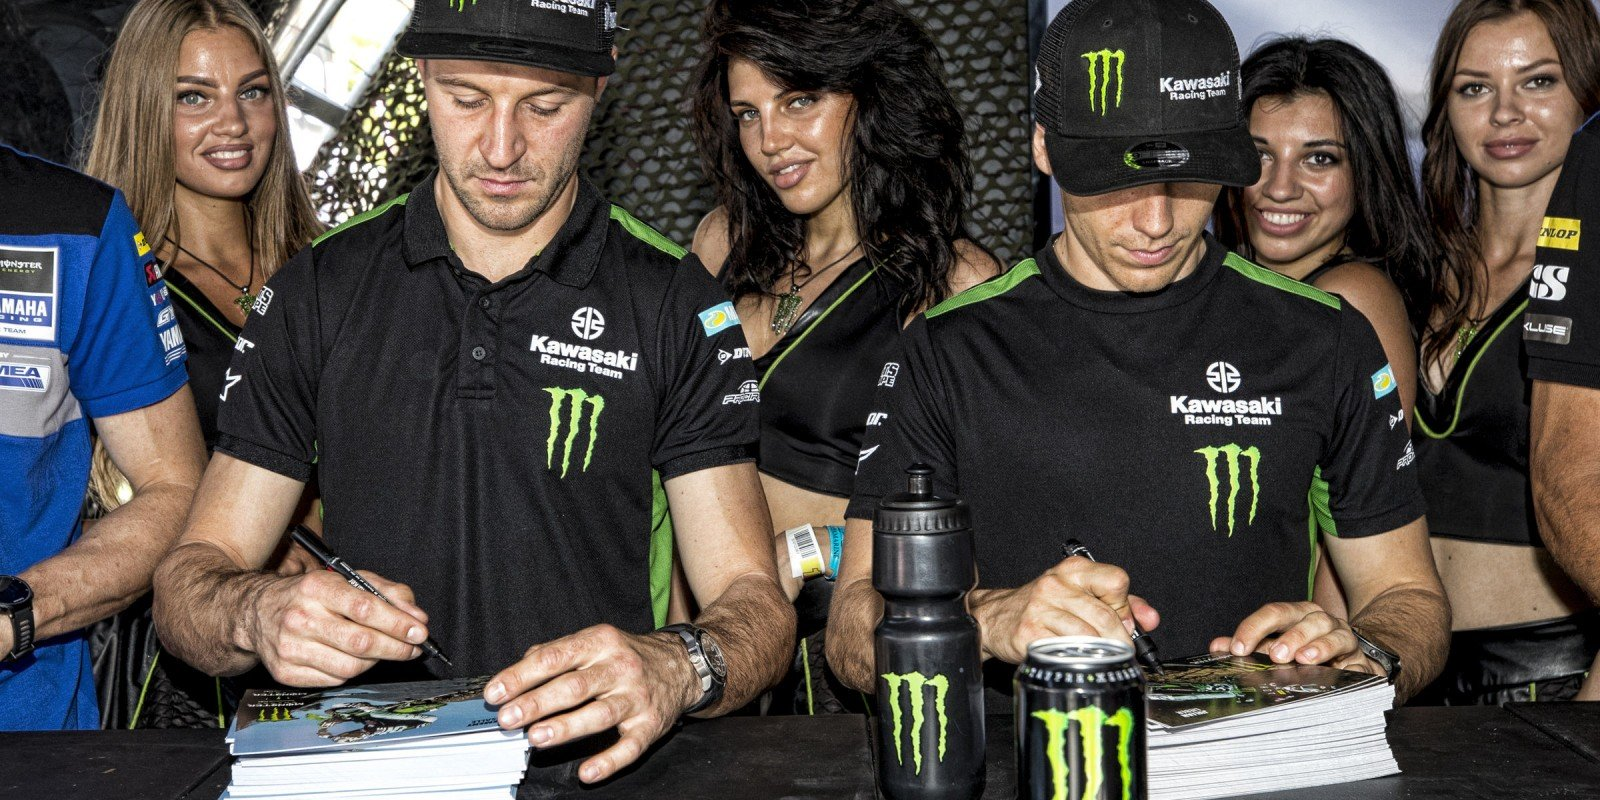 action at the MXGP Russia event, sponsored by Monster Energy